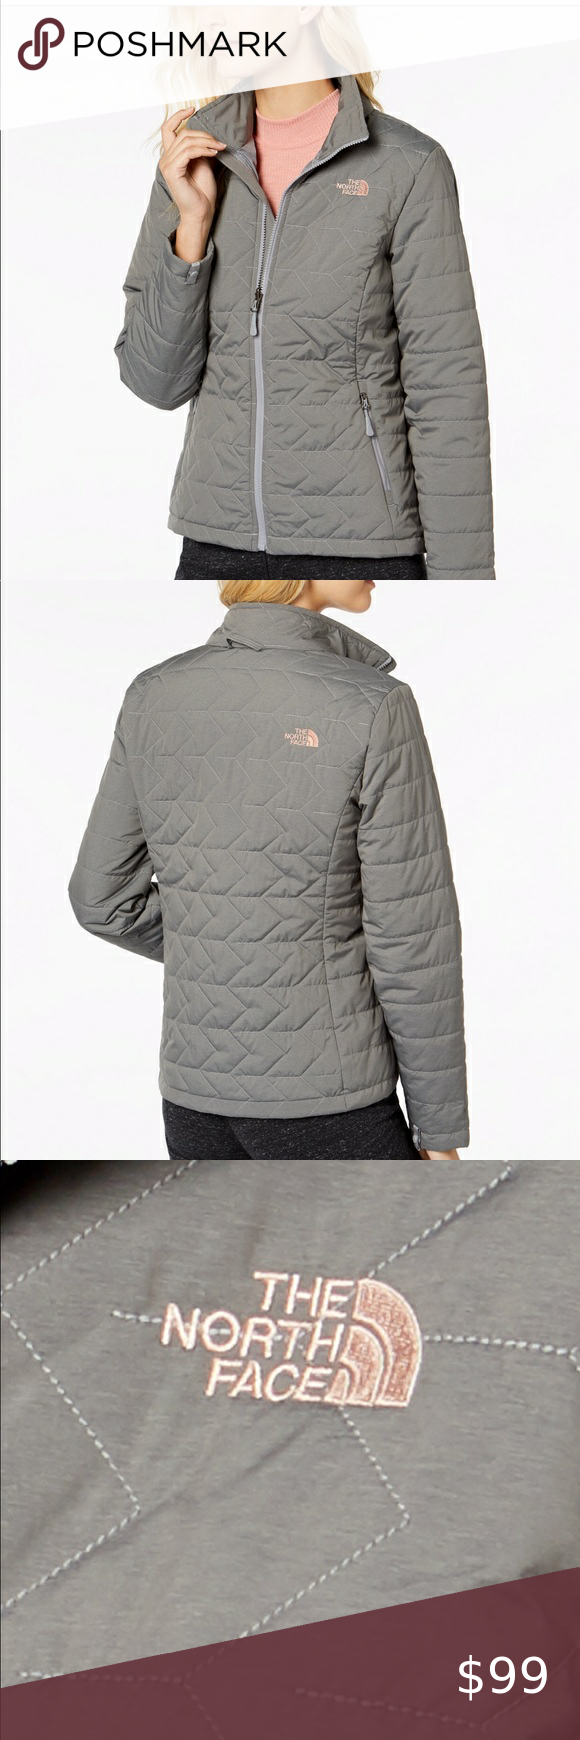 The North Face Gray Puffer Jacket New Xs New With Tags The North Face Zip Up Puffer North Face Puffer Jacket Grey North Face Jacket North Face Metropolis Parka [ 1740 x 580 Pixel ]